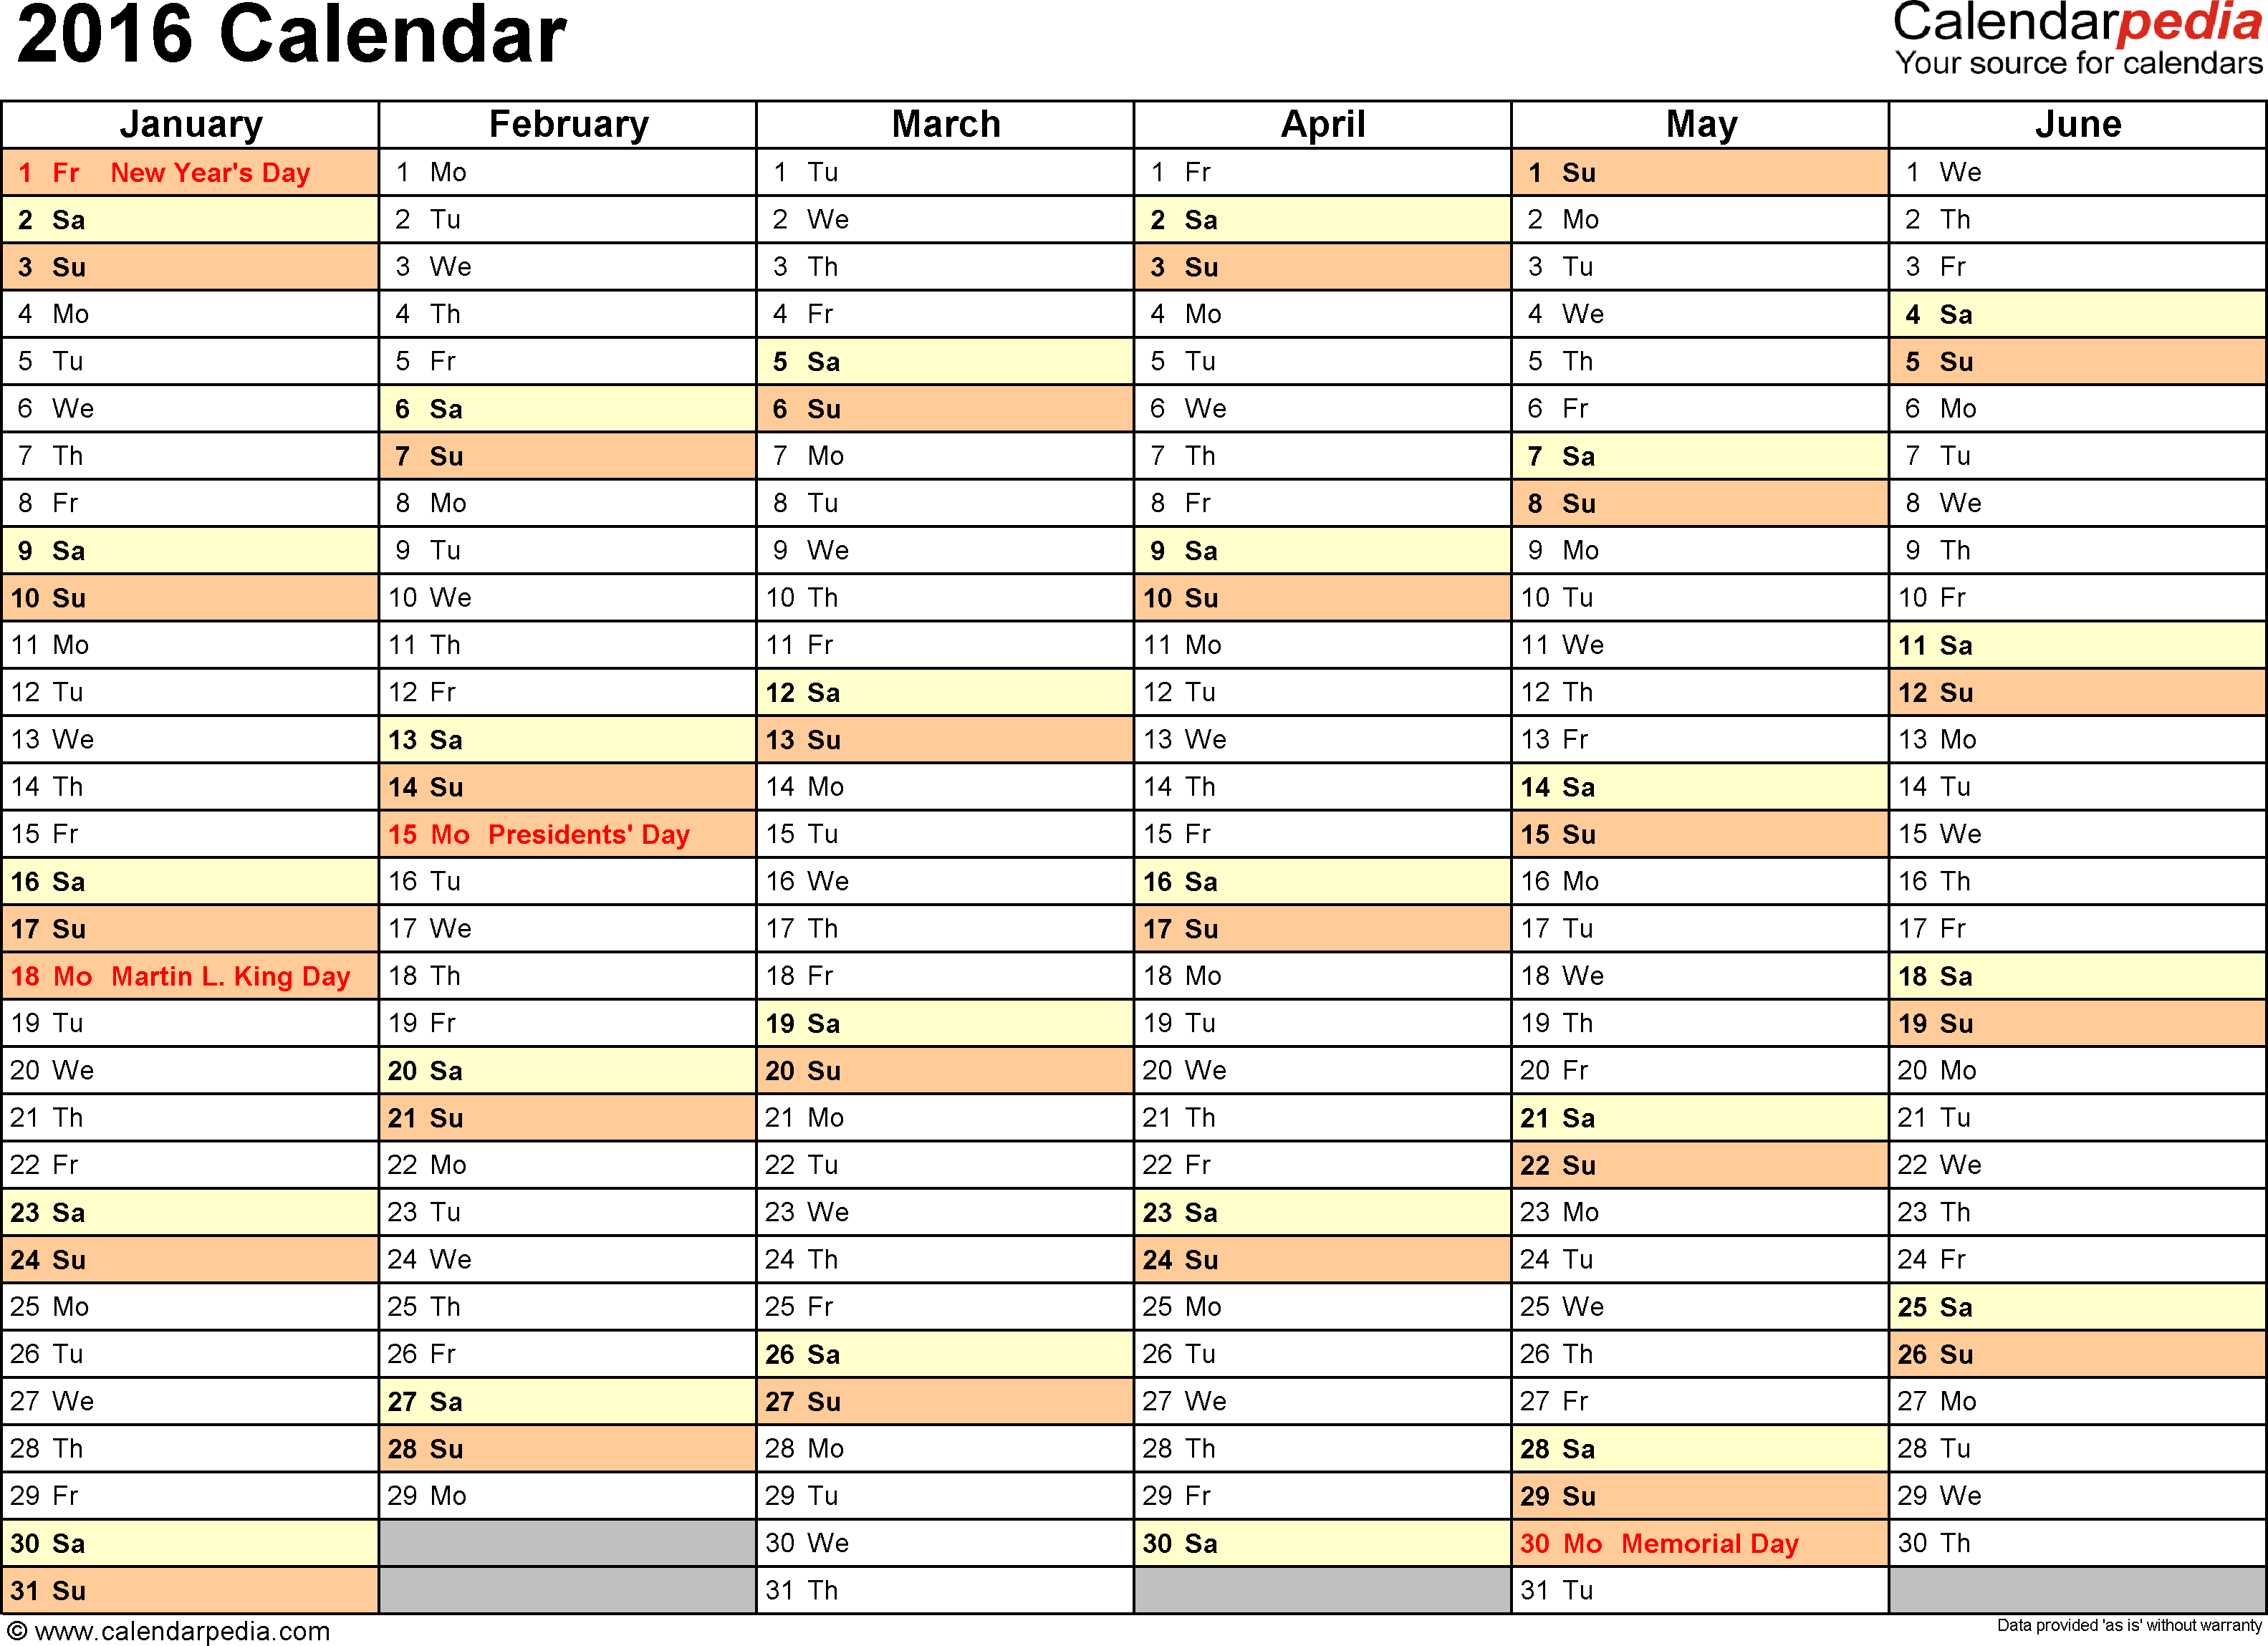 Ediblewildsus  Remarkable  Calendar  Download  Free Printable Excel Templates Xls With Licious Template   Calendar For Excel Months Horizontally  Pages Landscape Orientation With Delectable Sparklines Excel  Also Excel Stdev If In Addition Excel Find And Replace Function And Adding Drop Down List In Excel  As Well As Excel Between Two Numbers Additionally Newest Version Of Excel From Calendarpediacom With Ediblewildsus  Licious  Calendar  Download  Free Printable Excel Templates Xls With Delectable Template   Calendar For Excel Months Horizontally  Pages Landscape Orientation And Remarkable Sparklines Excel  Also Excel Stdev If In Addition Excel Find And Replace Function From Calendarpediacom